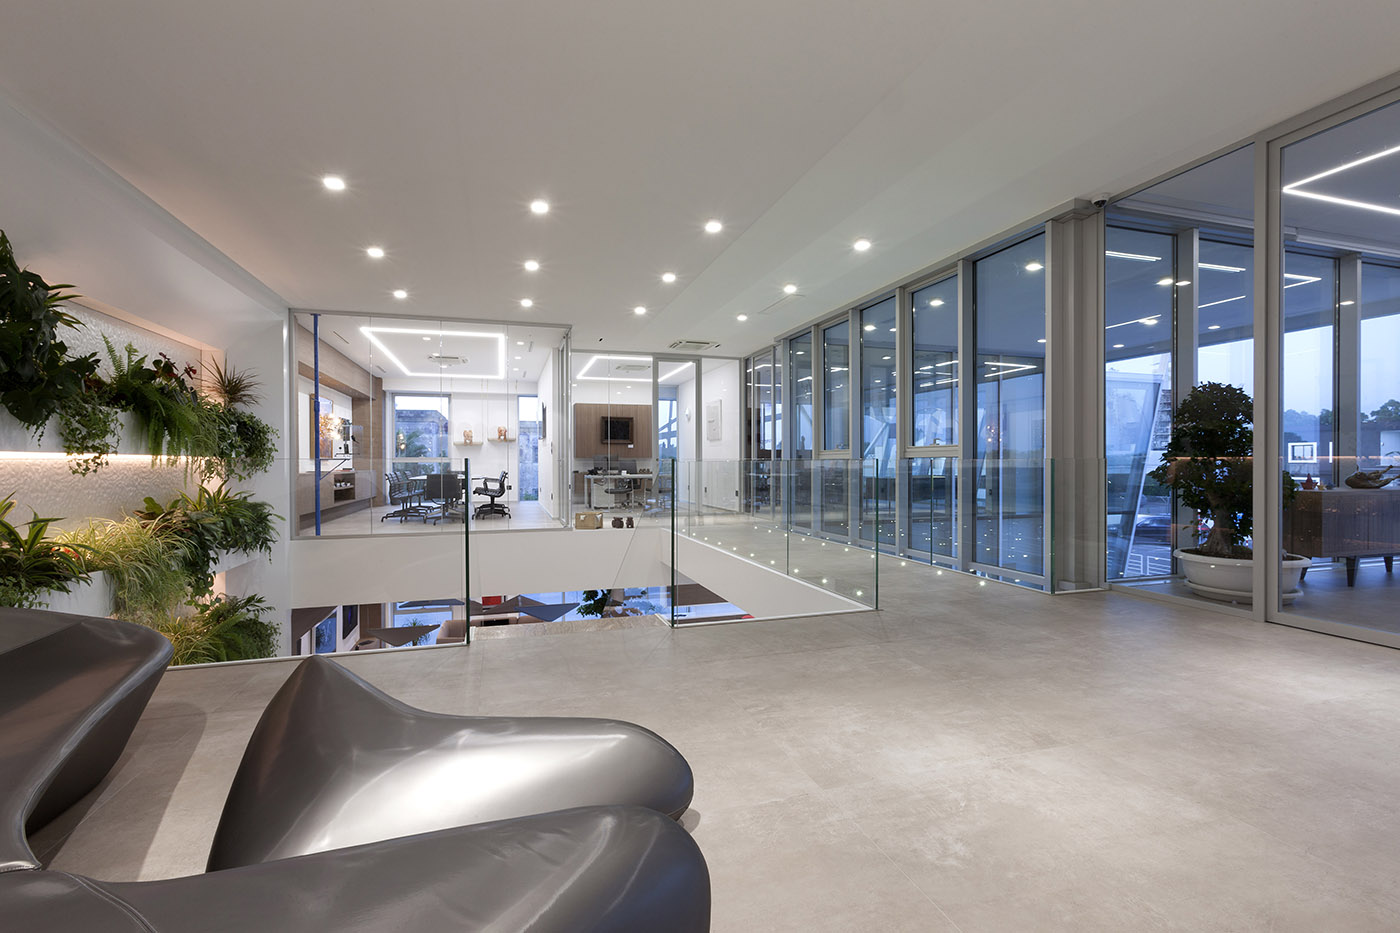 Corporate headquarters interior